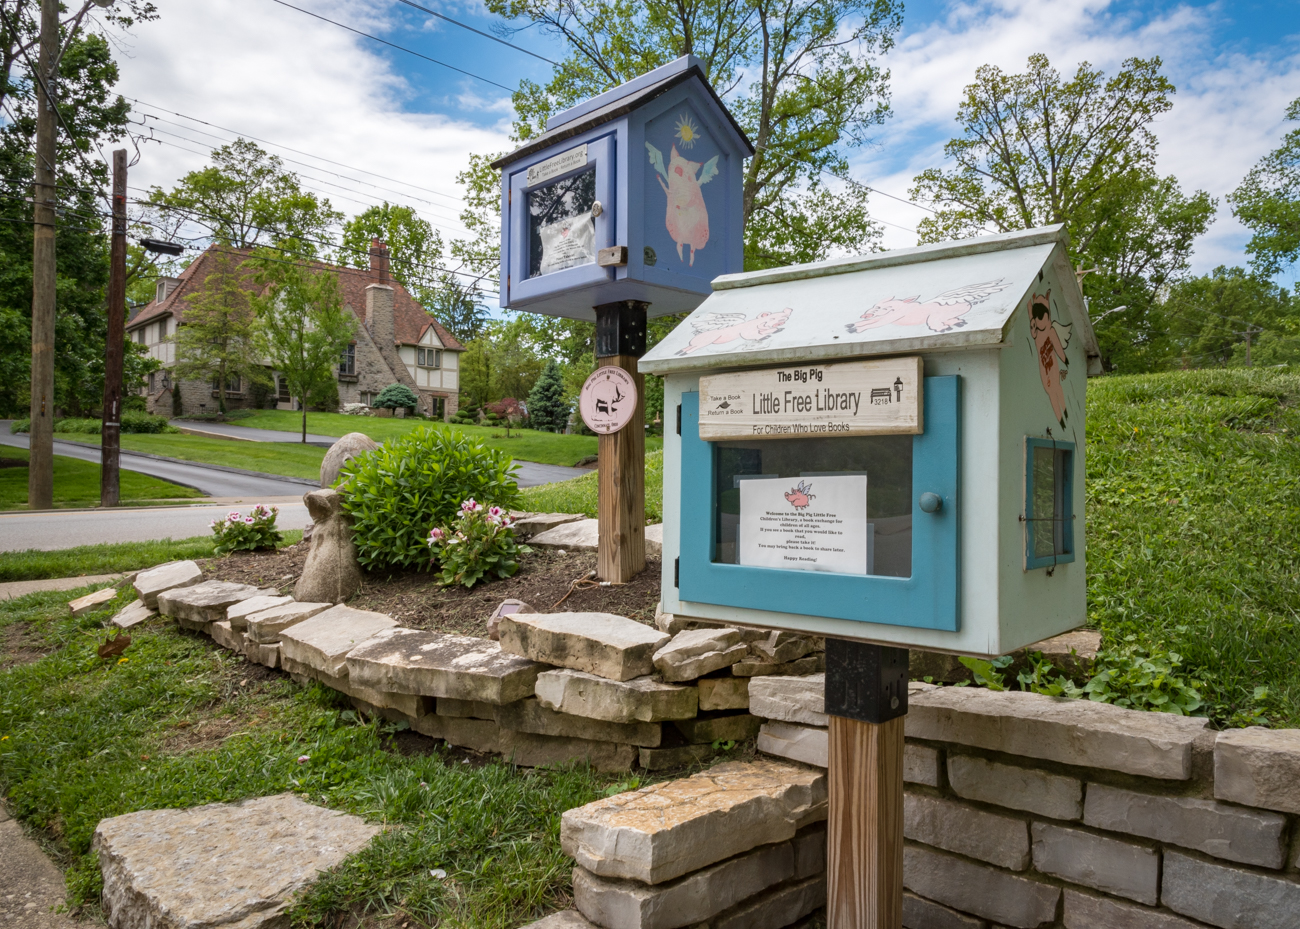 LOCATION: The corner of Observatory and Burch Avenues in Hyde Park / ADDRESS: 2552 Observatory Avenue (45208) / FUN FACT: There are two free libraries in one spot! The tall one is for adults and the short one is for children. / IMAGE: Phil Armstrong, Cincinnati Refined // PUBLISHED: 5.3.17